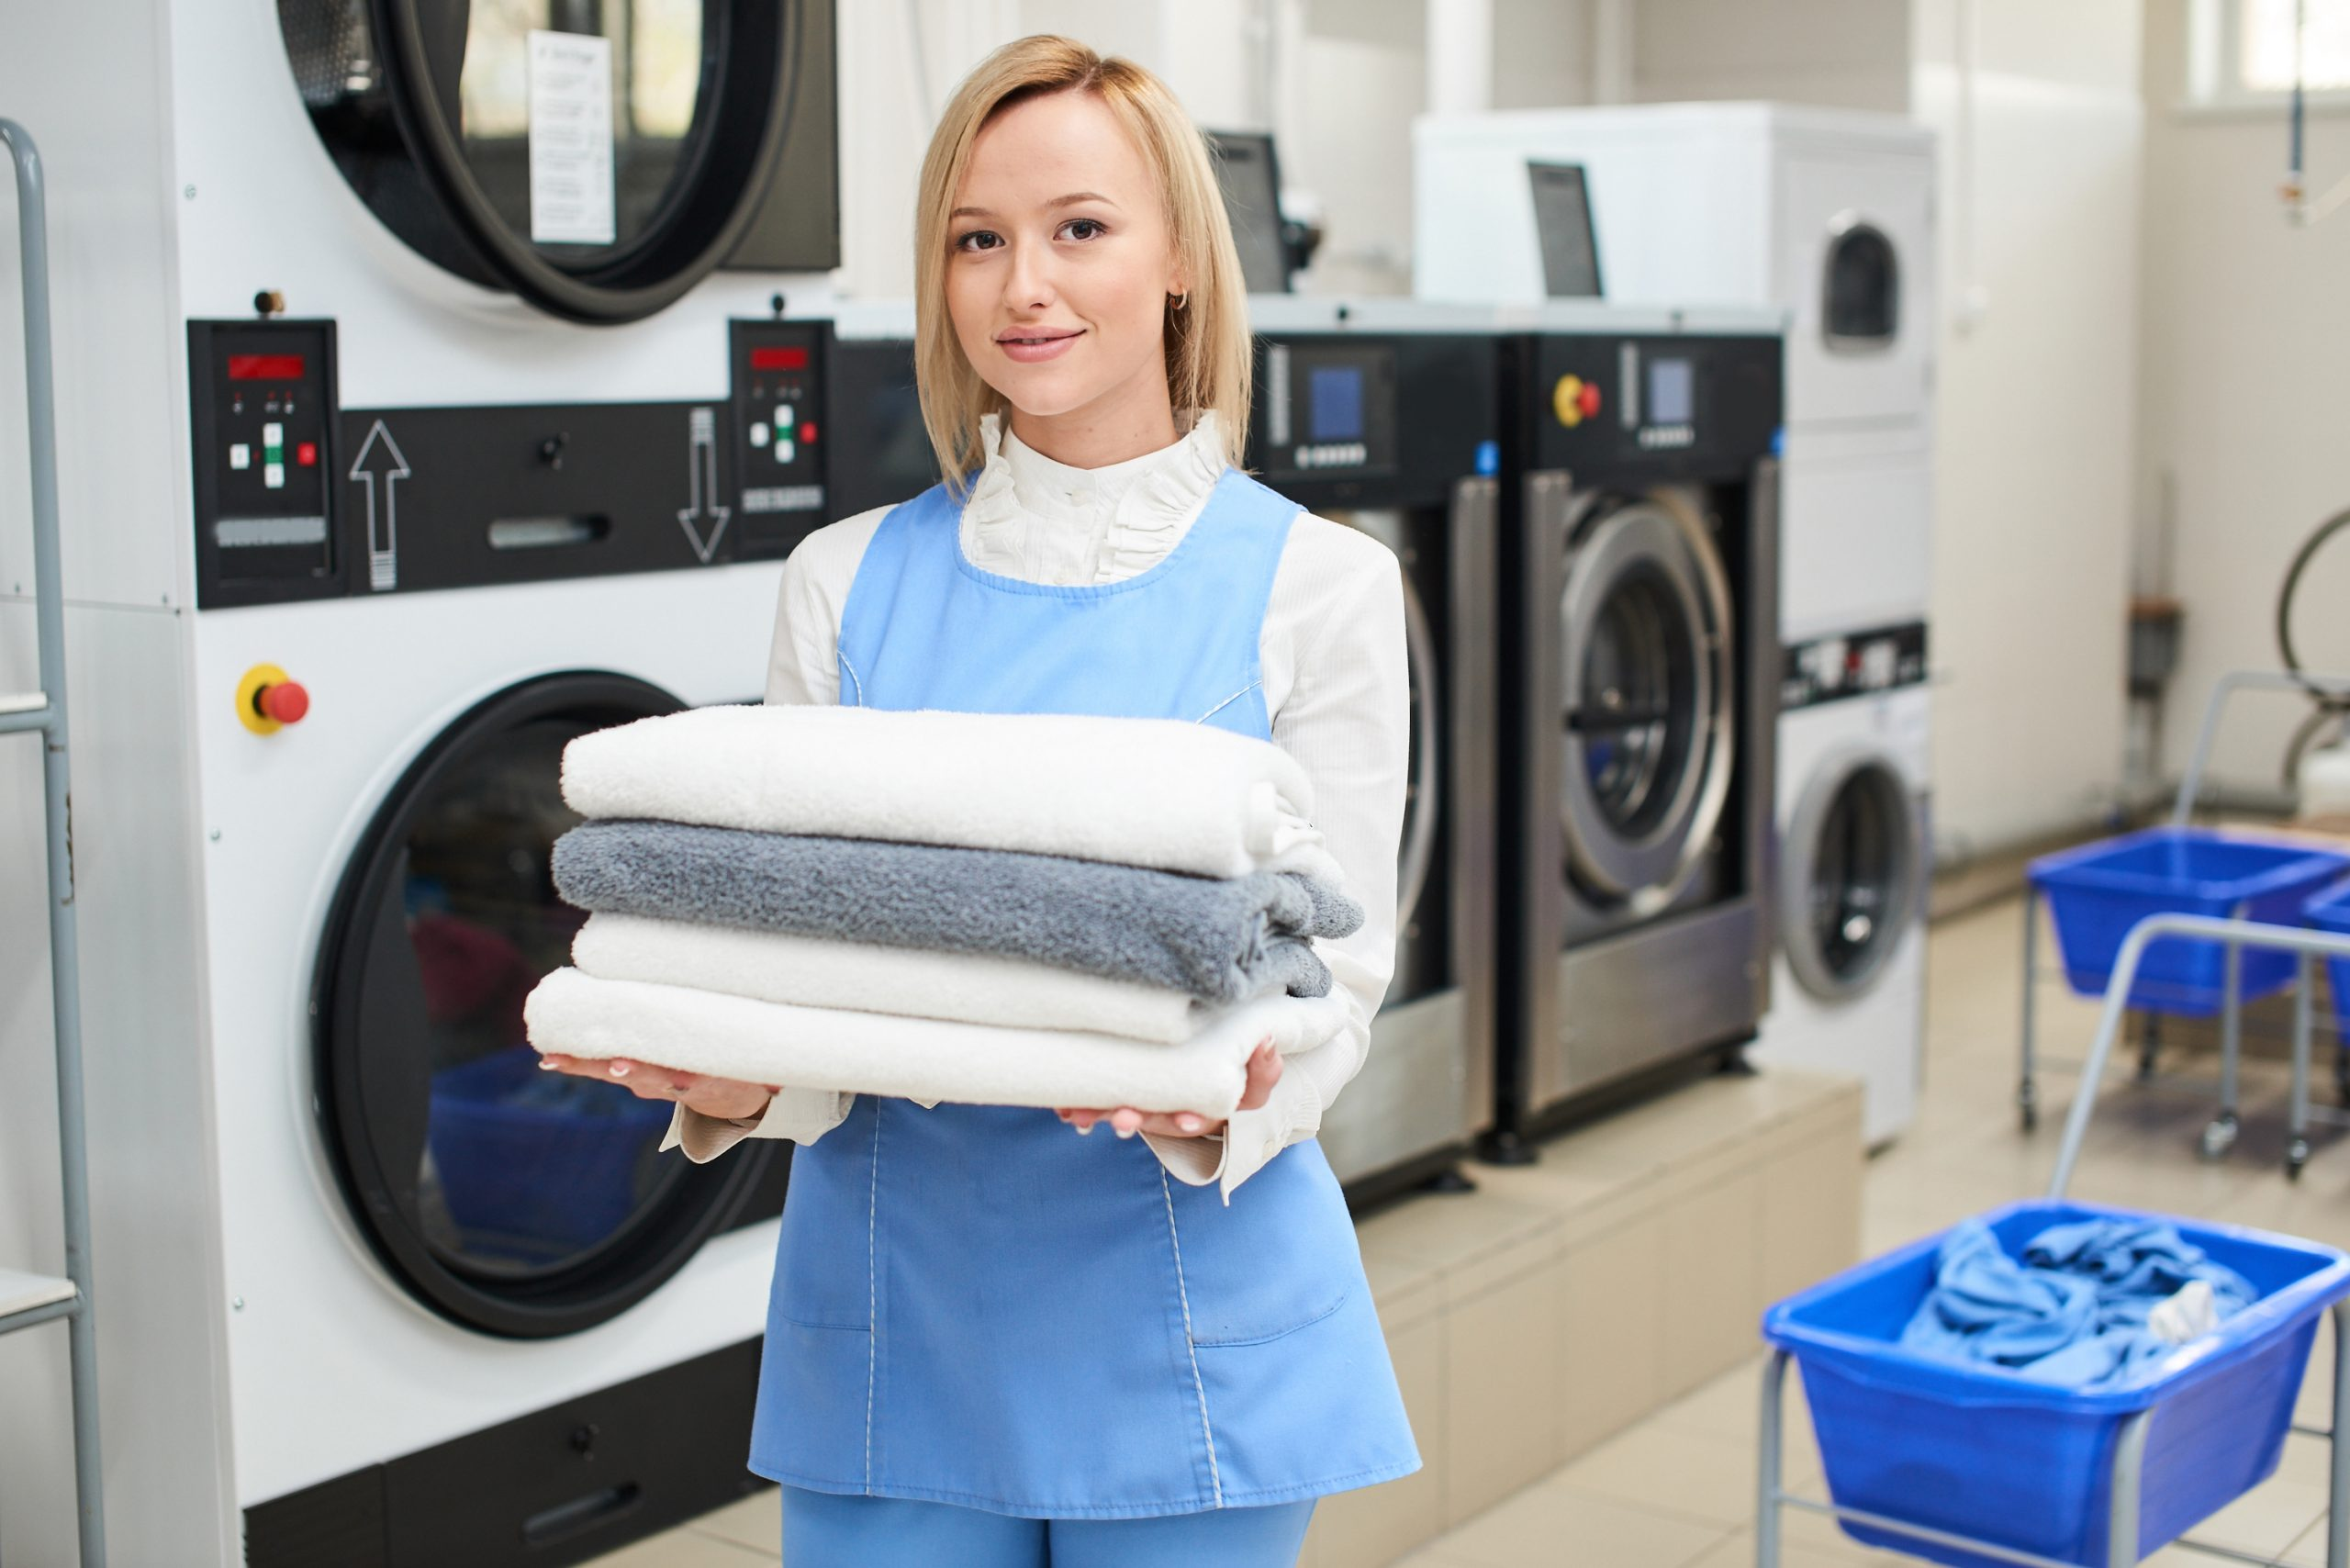 Professional laundry cleaner in Miami